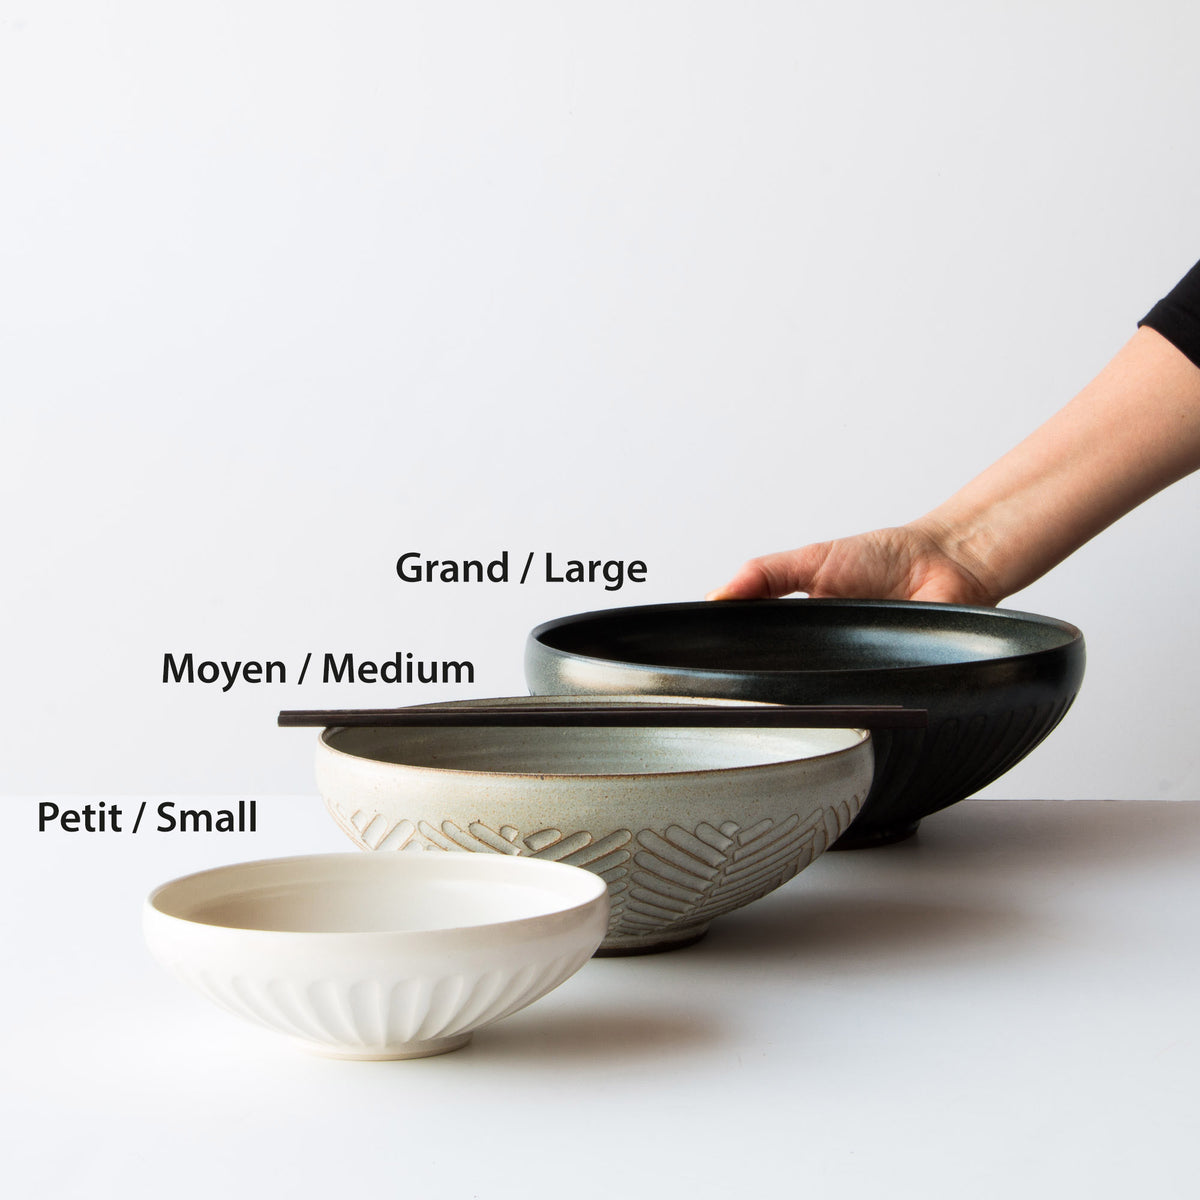 Dimensions Of Ceramic Eating Bowls. Christian Roy. Chic & Basta.